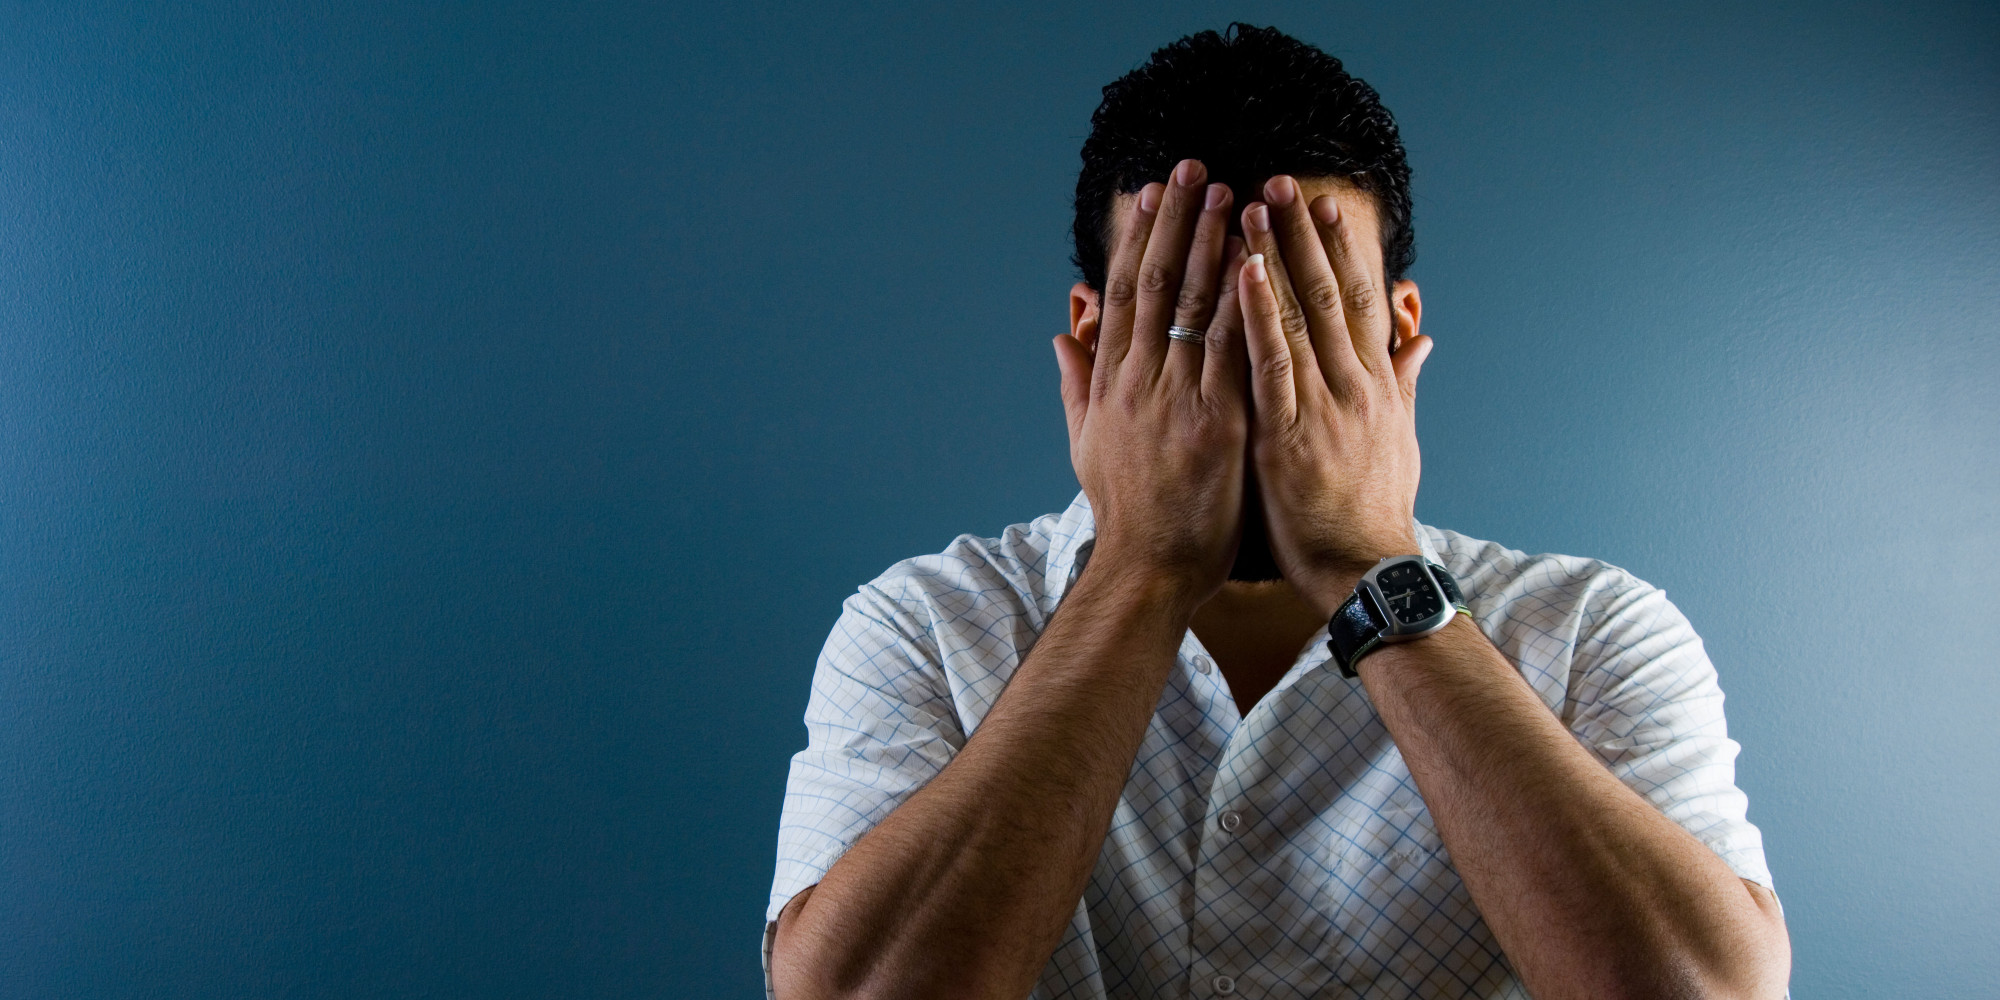 A3DATJ Contemporary image of a man hiding his face indoors